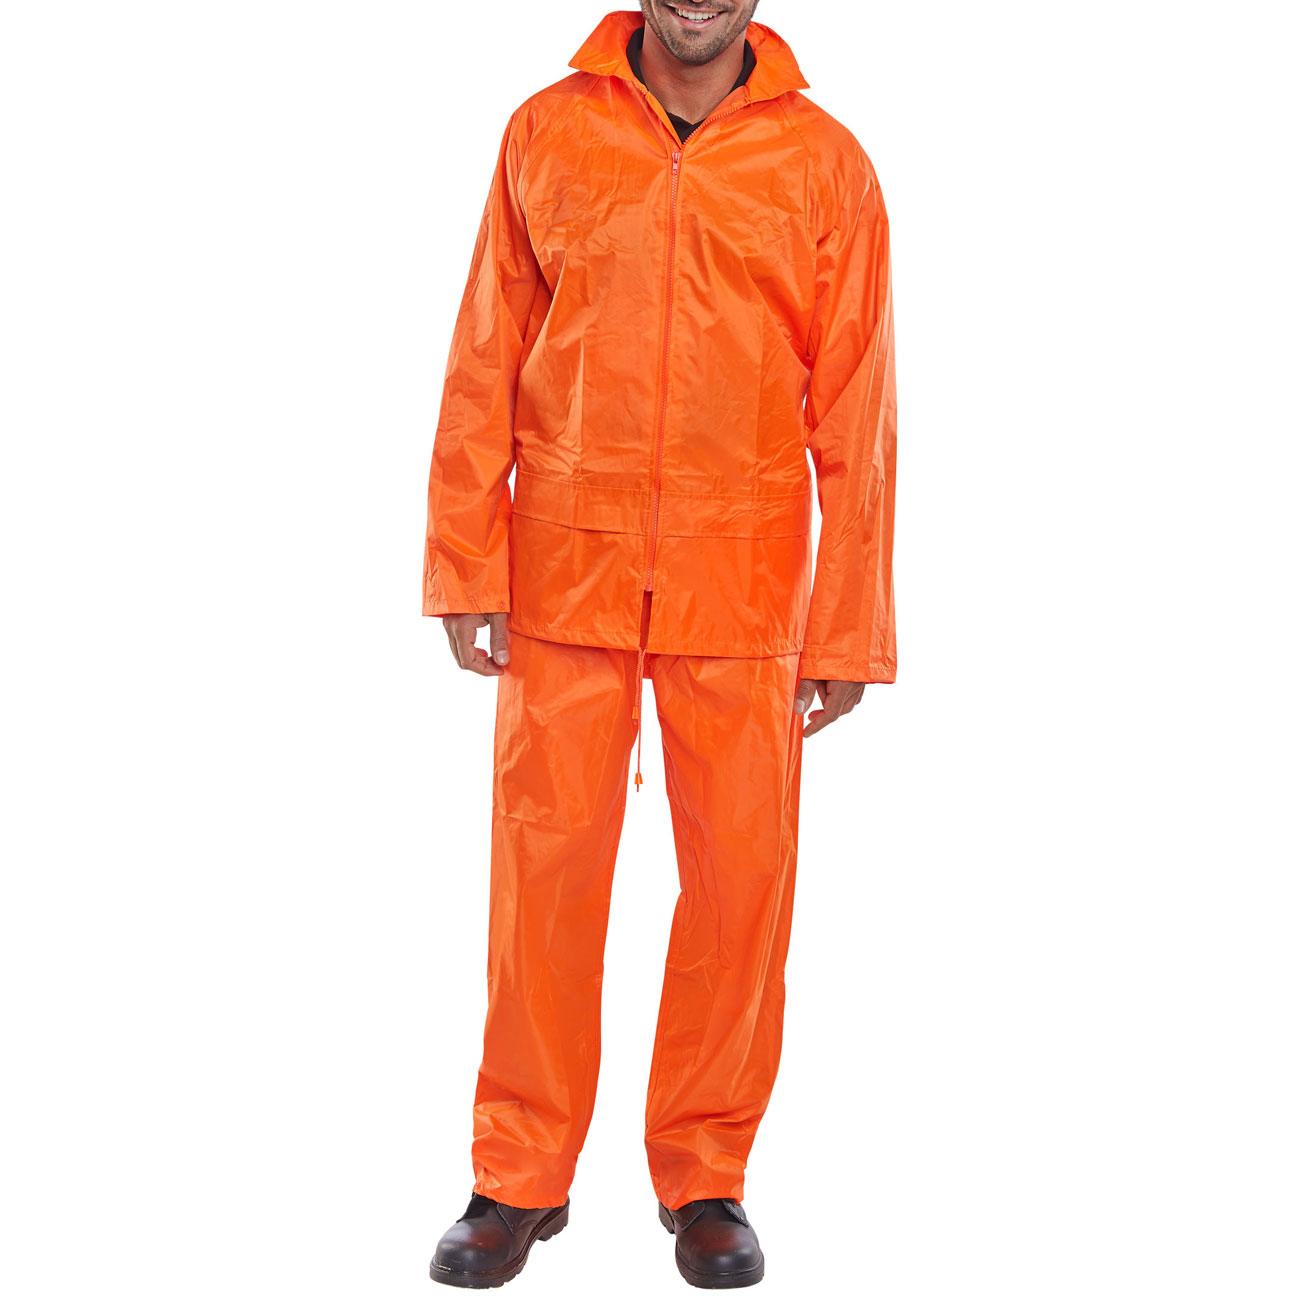 B-Dri Weatherproof Suit Nylon Jacket and Trouser 3XL Orange Ref NBDSORXXXL *Up to 3 Day Leadtime*